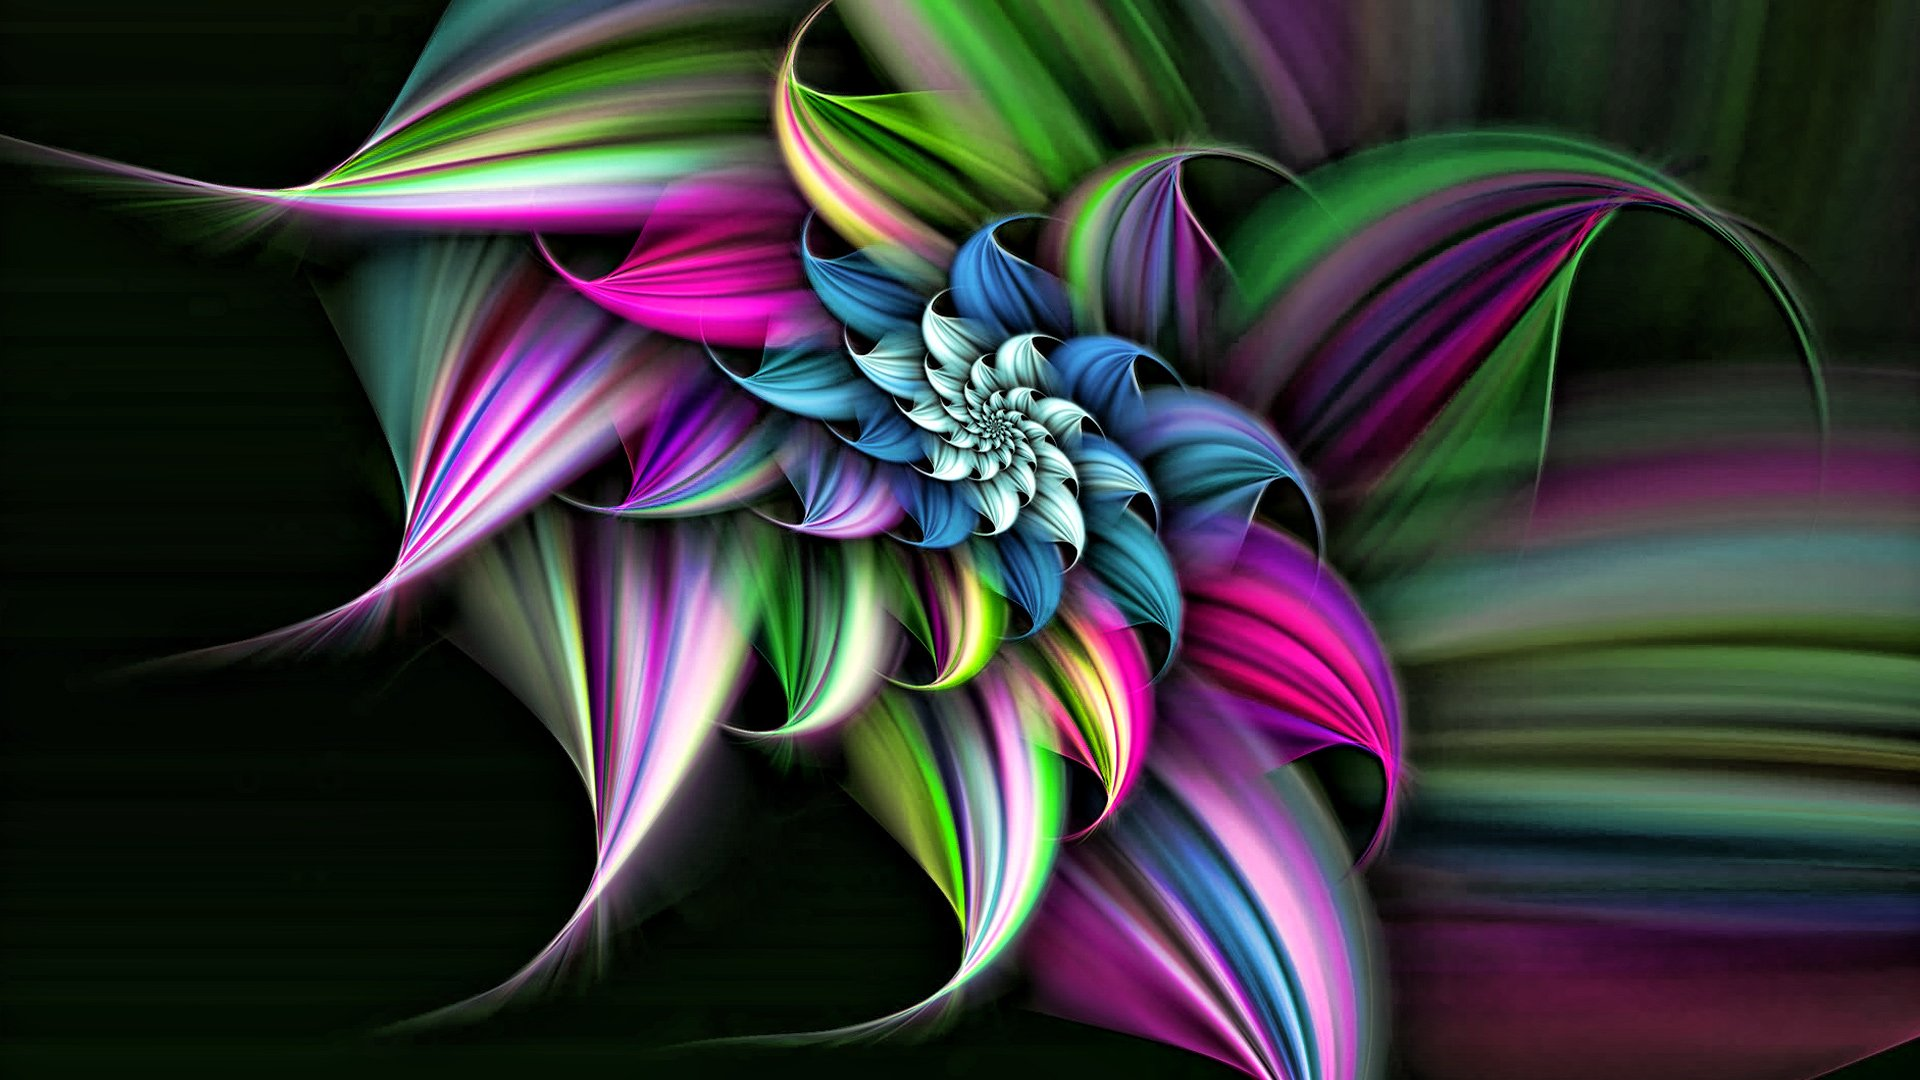 50 ] Free 3D Colorful Flowers Wallpaper On WallpaperSafari